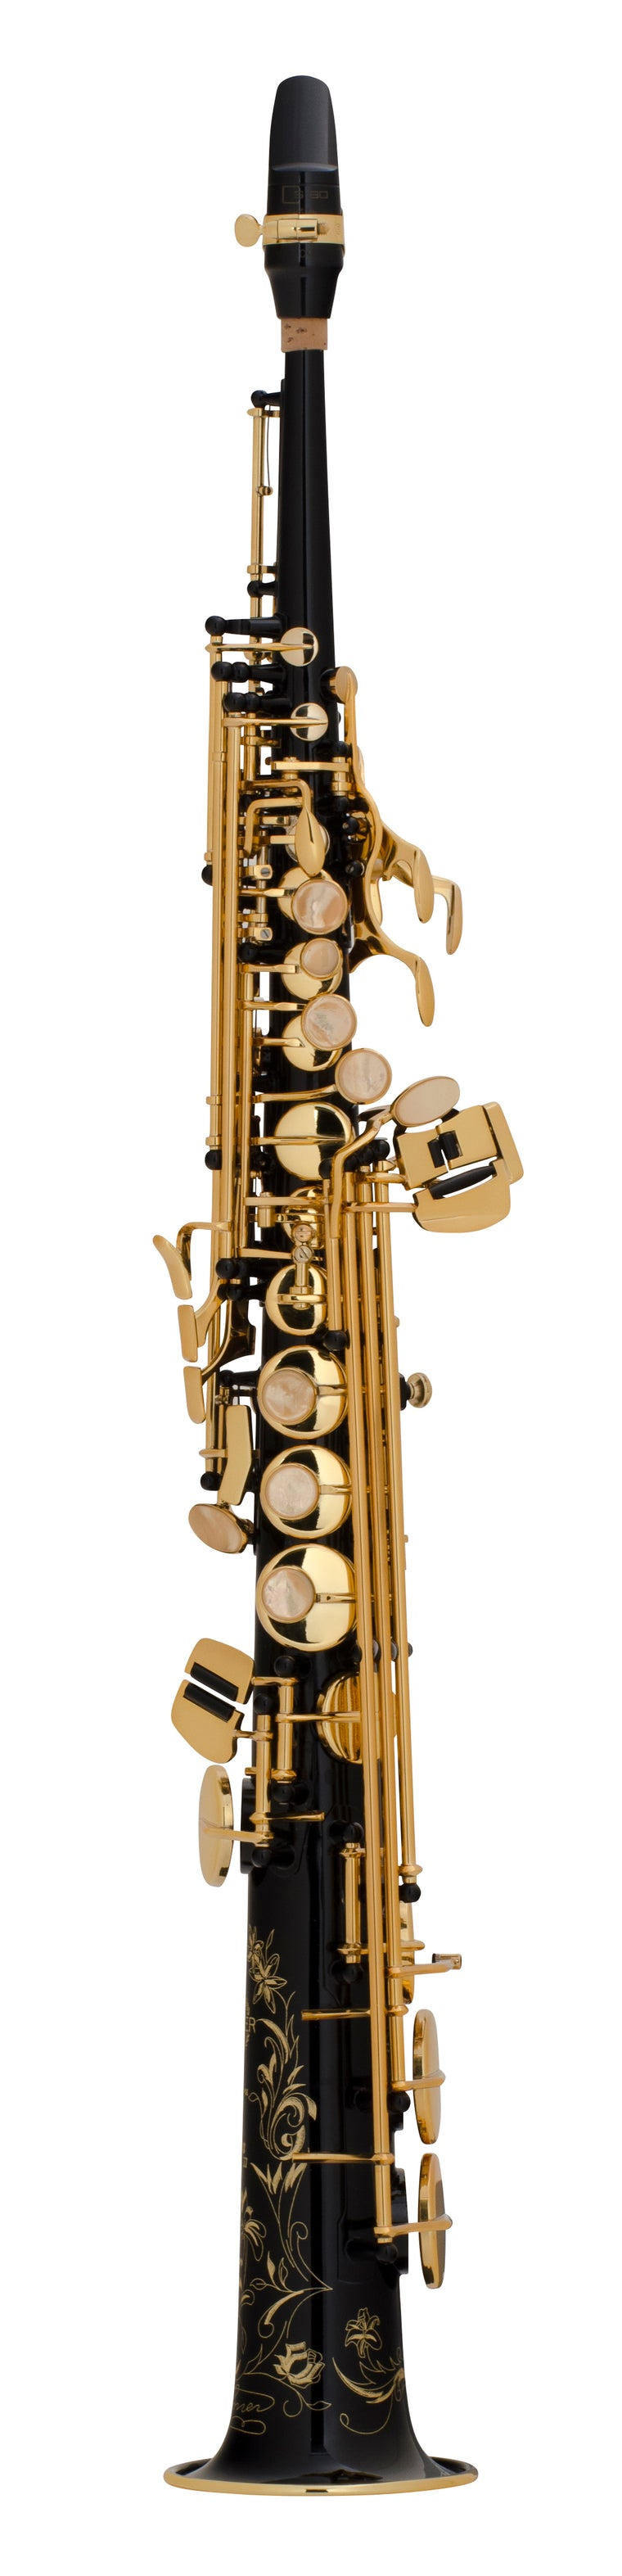 Selmer Super Action 80 Series II Soprano Saxophone - Black Lacquer